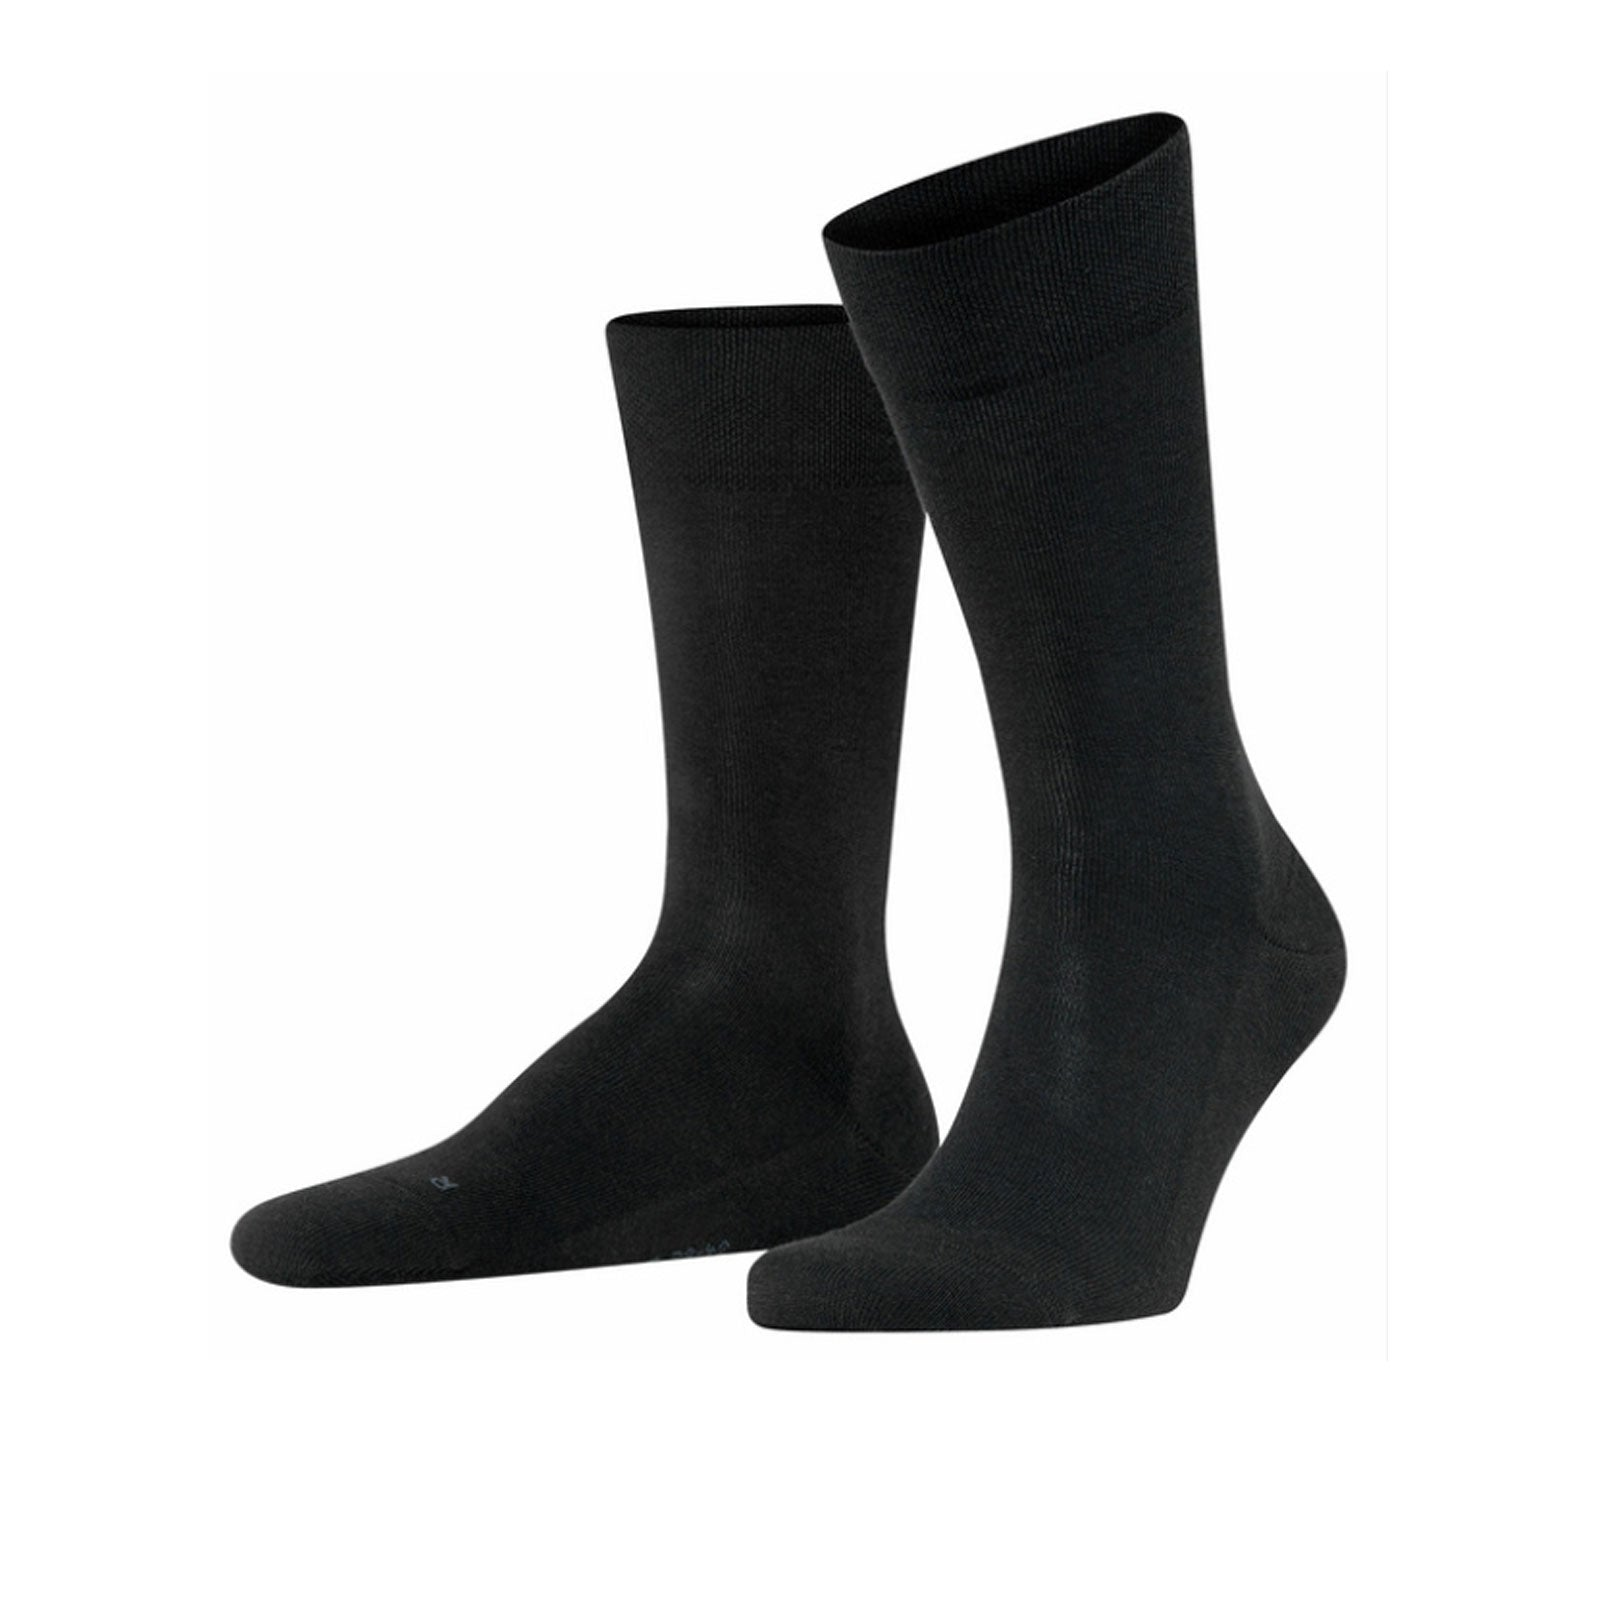 Falke Sensitive London (Men) - Black Socks|Life - Crew - The Heel Shoe Fitters